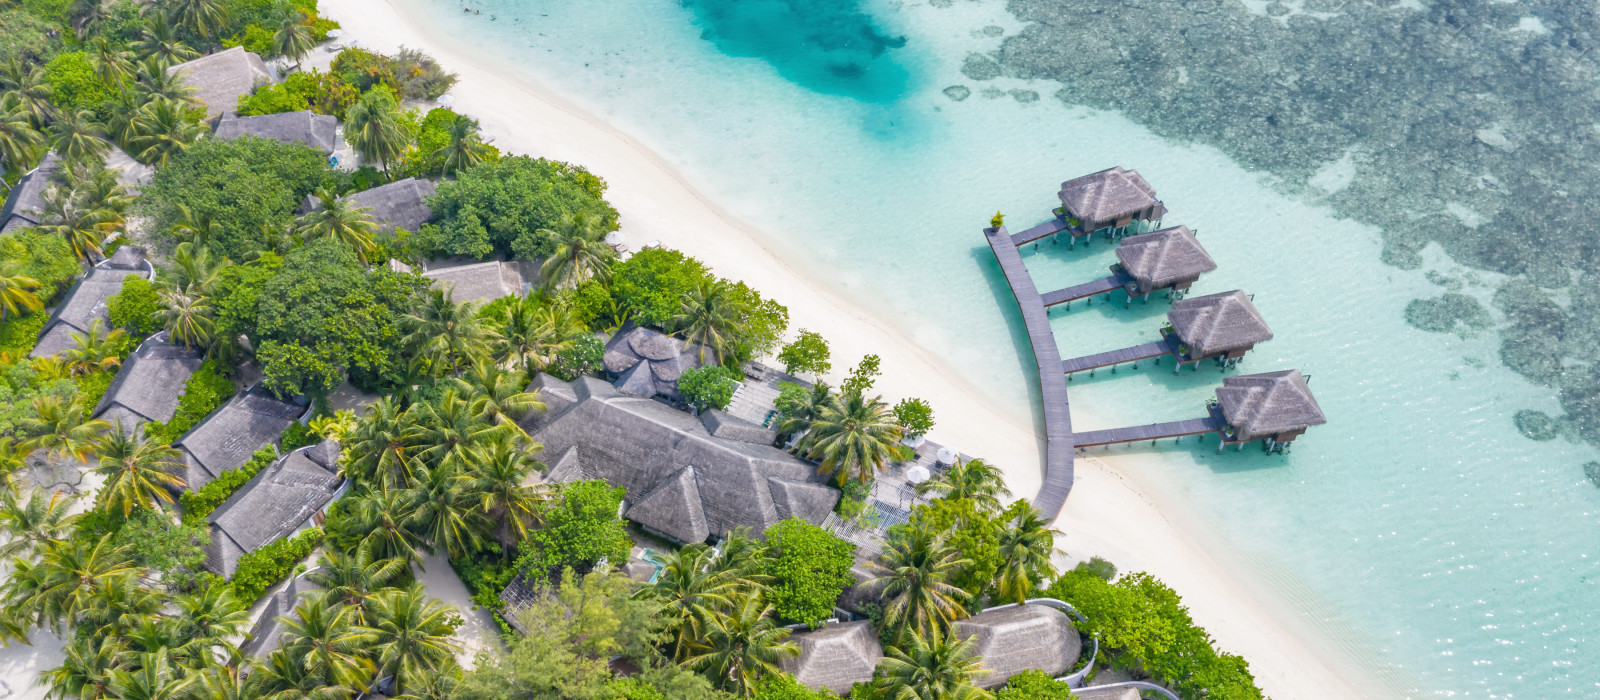 Aerial view of beautiful white sand beach, palm trees and villas, bungalows luxury beach scene of Maldives island